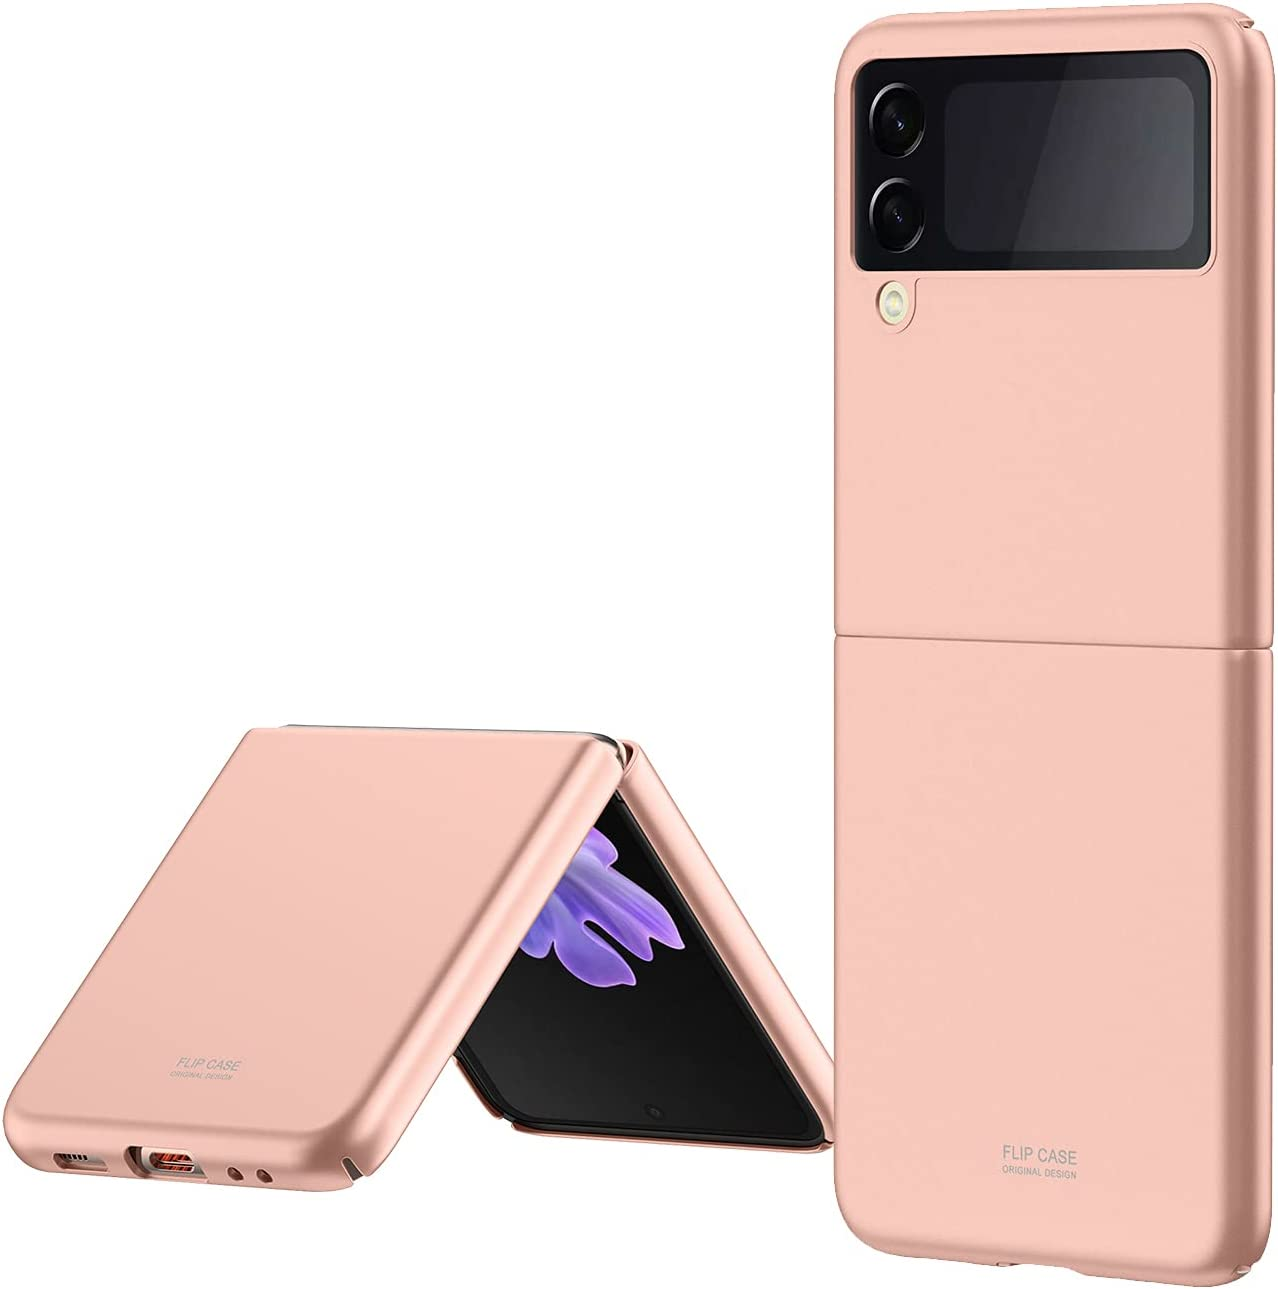 Case for Galaxy Z Flip 3, Heavy Duty Protection Shockproof PC Outer Cases with Reinforced Corners Anti-Scratch, Compatible with Samsung Galaxy Z Flip 3 (Golden)